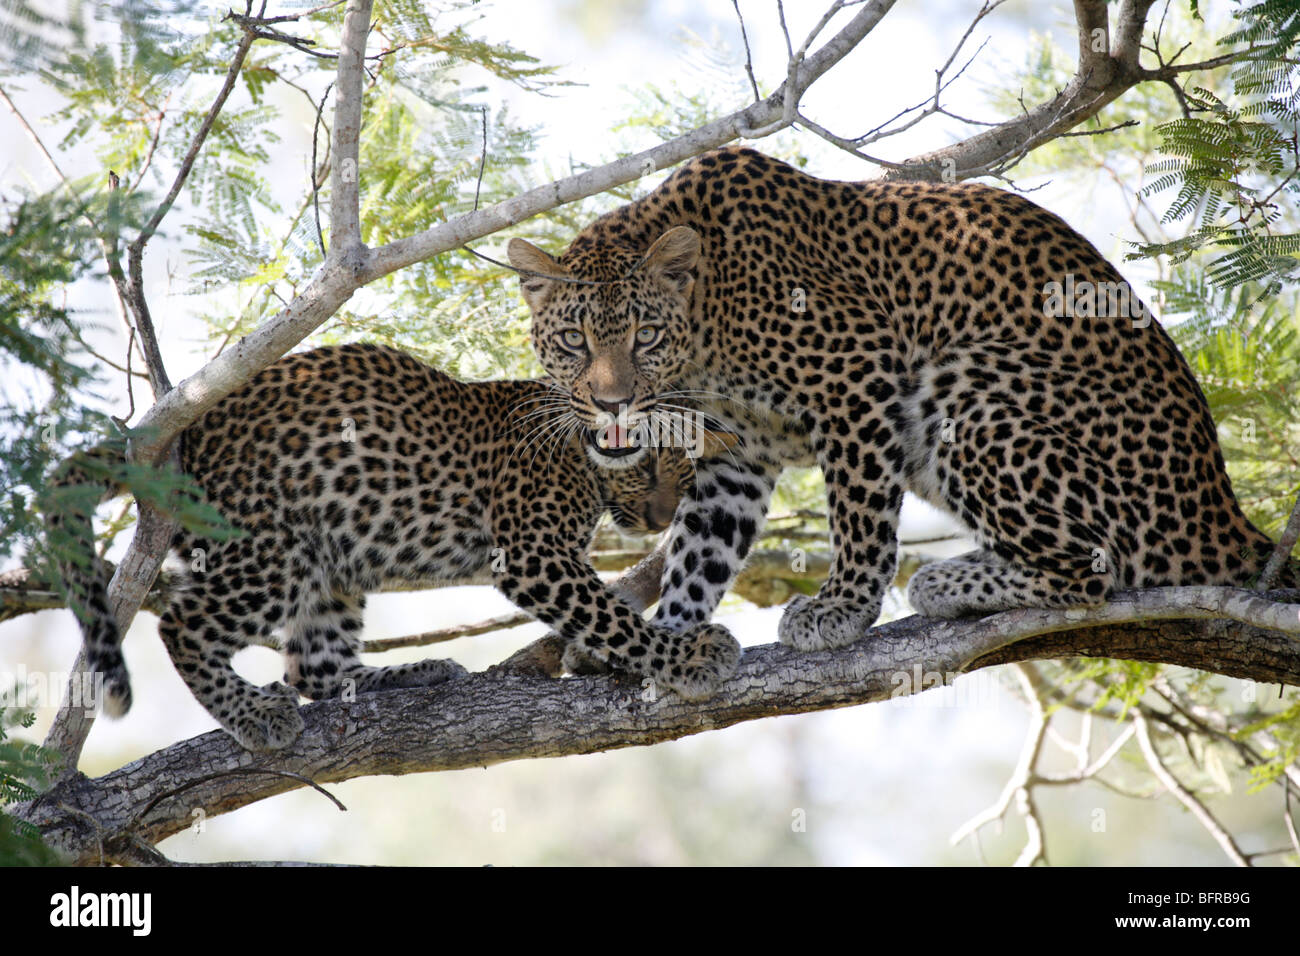 A leopard and cub in a tree with the mother snarling - Stock Image